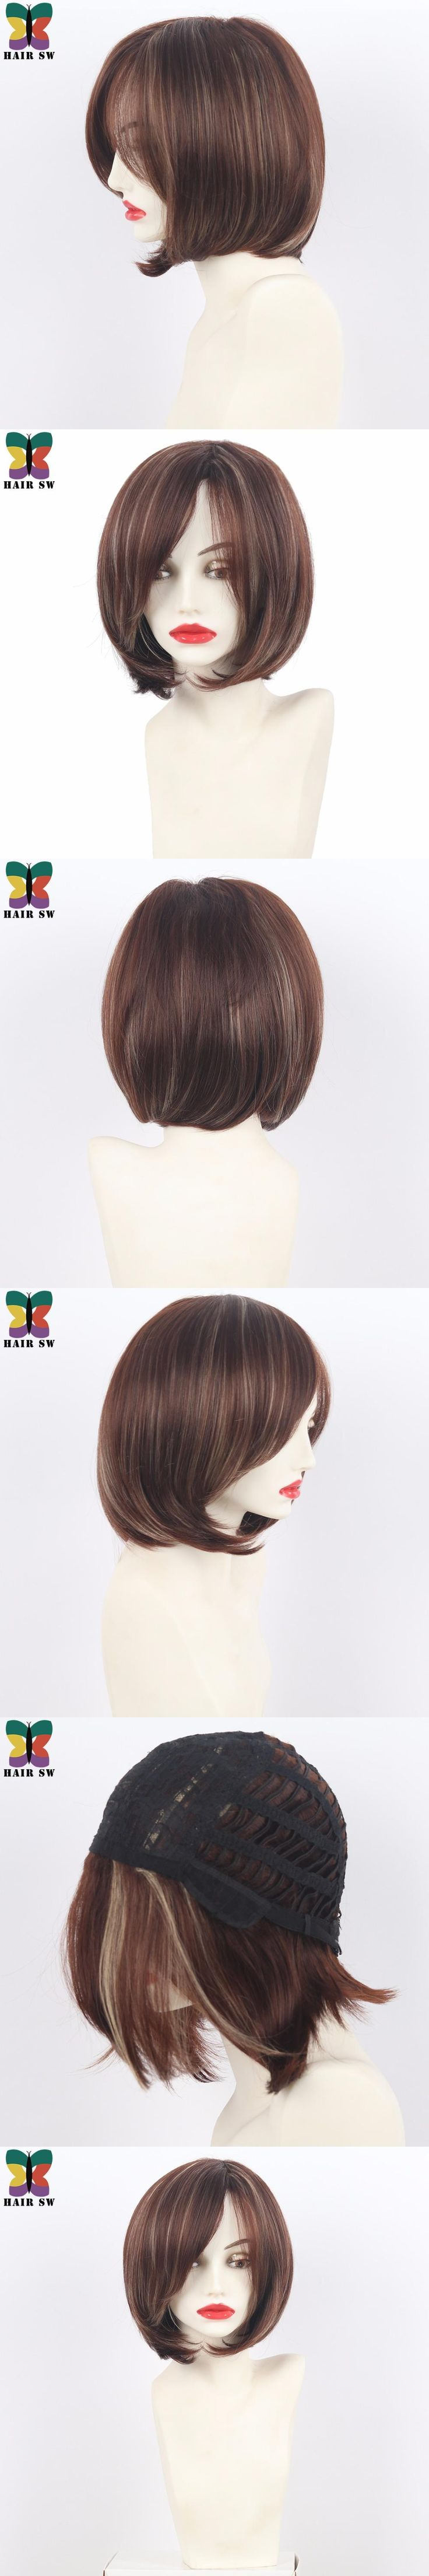 HAIR SW Short Angled Bob Natural Straight Synthetic Wig With Side Swept Bangs Fringe Brown Blonde Highlights Women's Wig